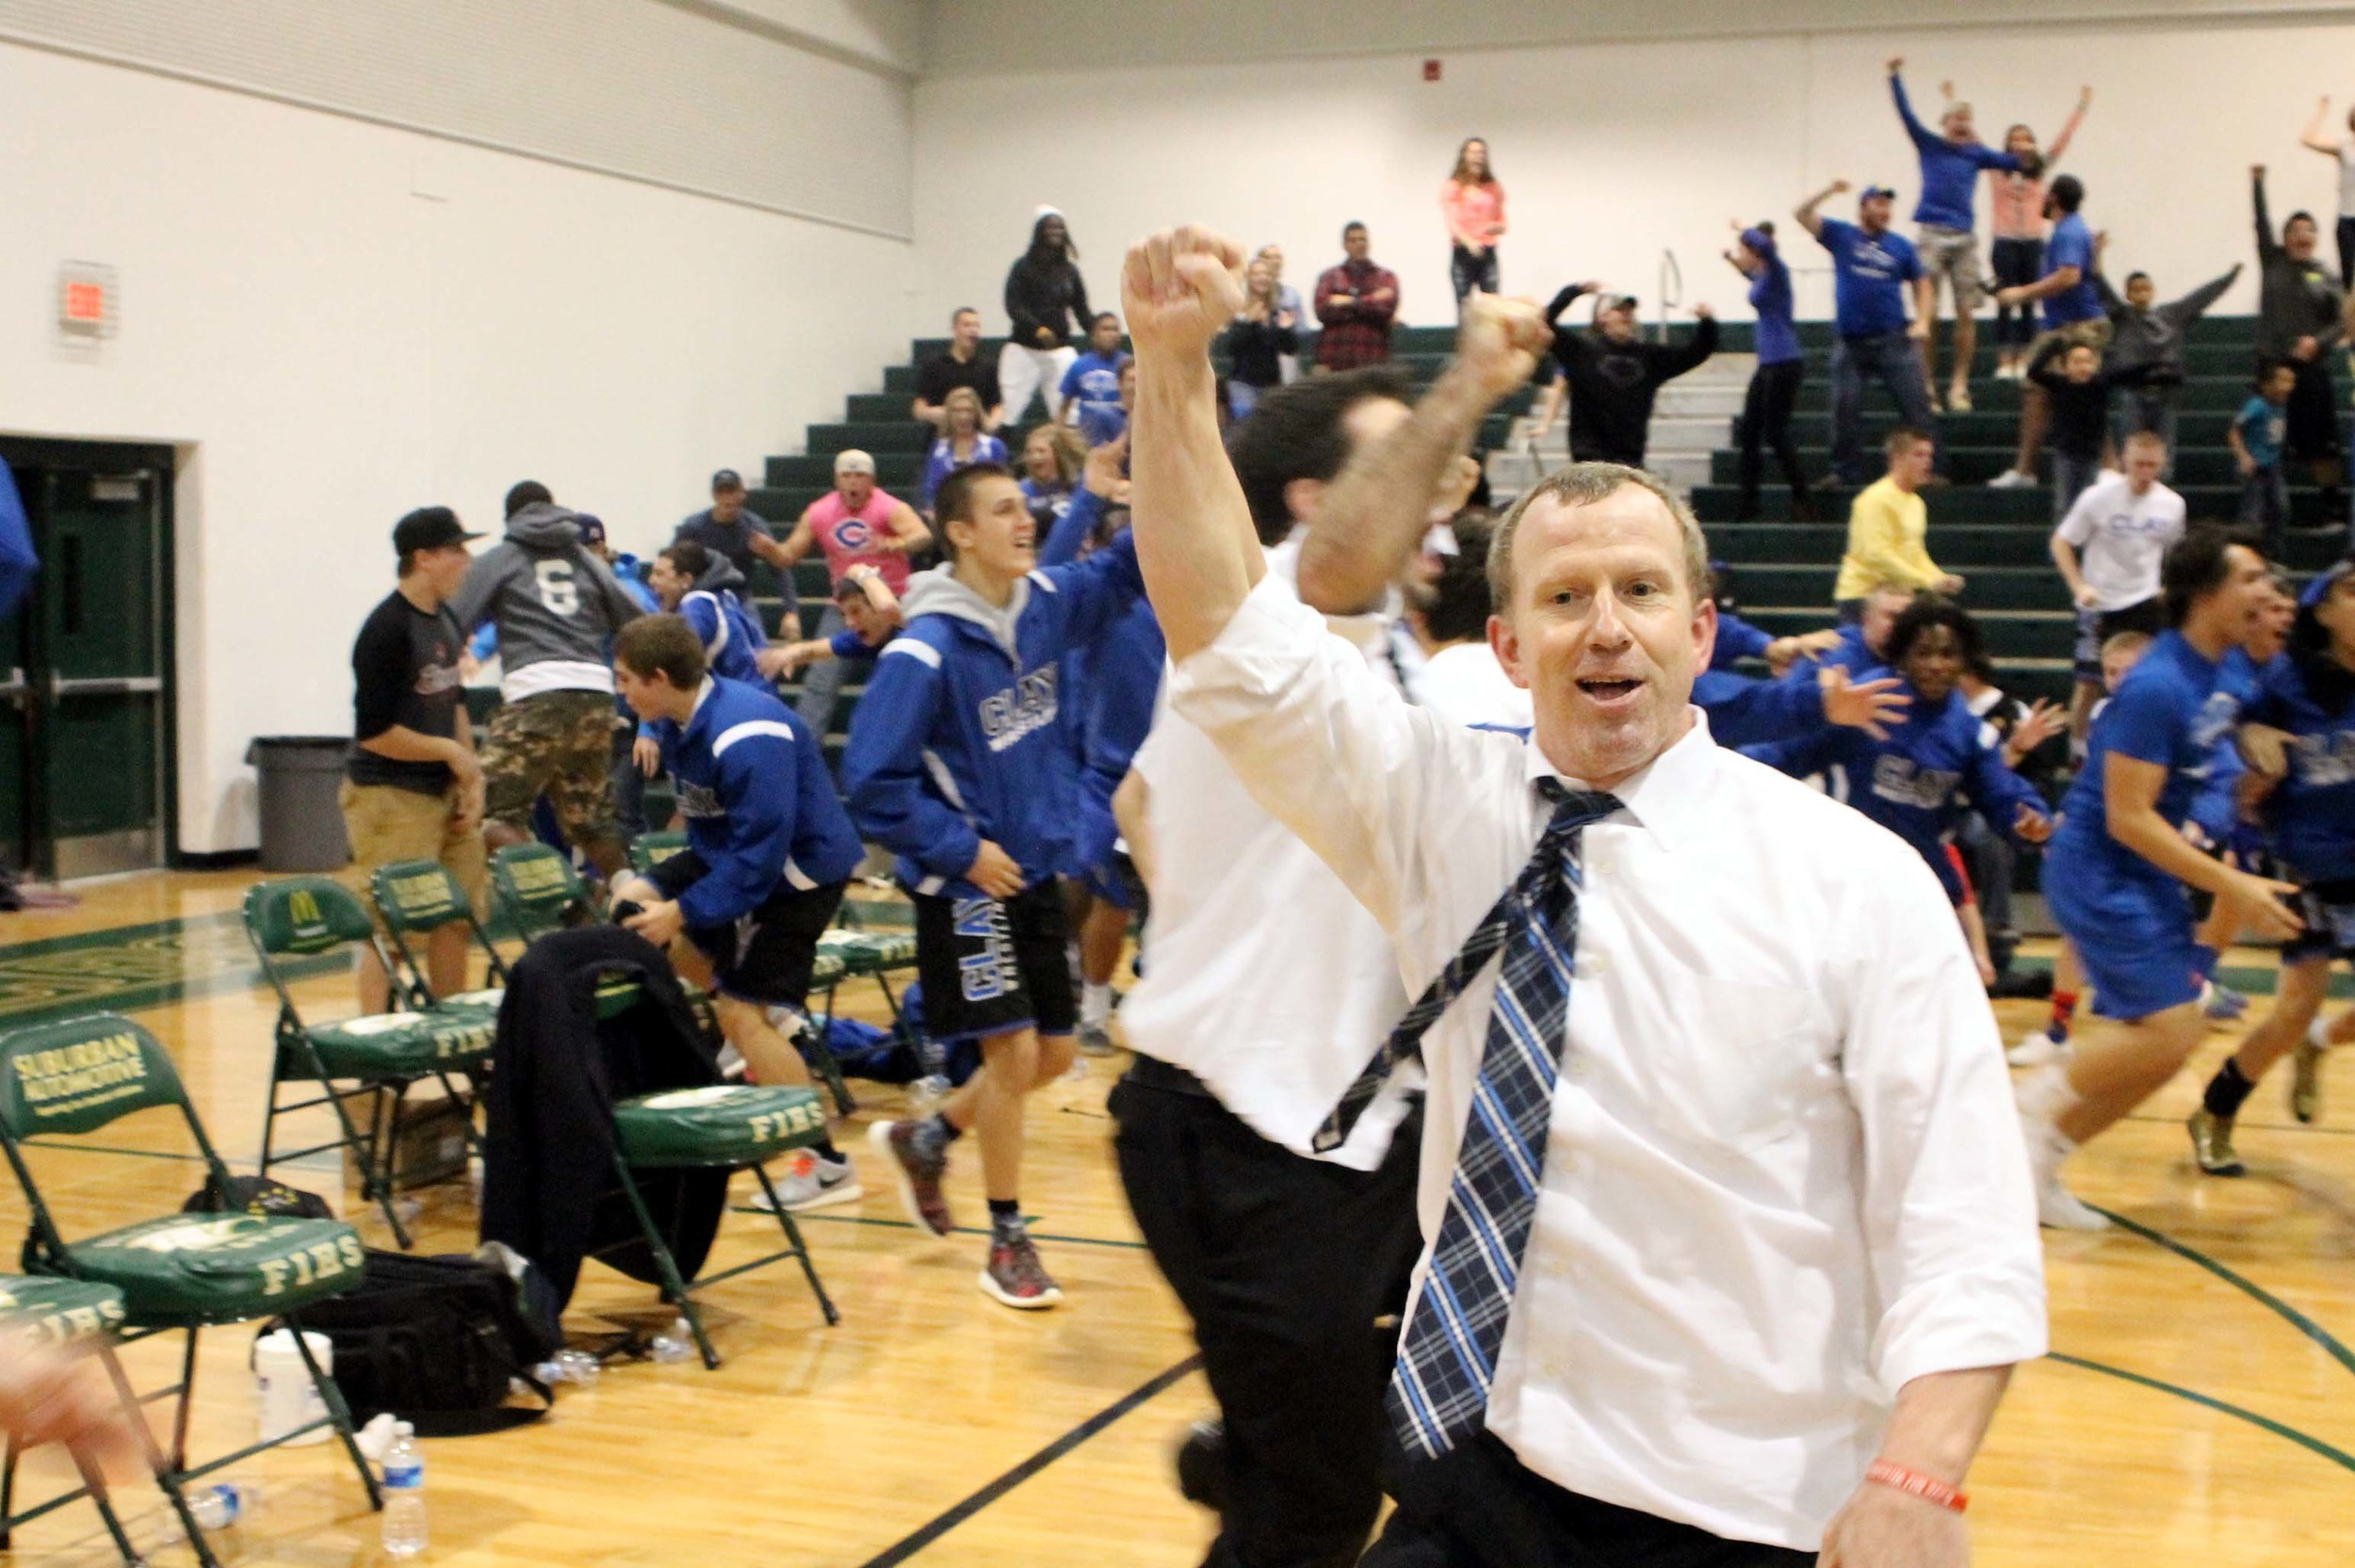 Clay High wrestling coach Jim Reape got another notch on his belt after yet another thrilling dual match win over Fleming Island.